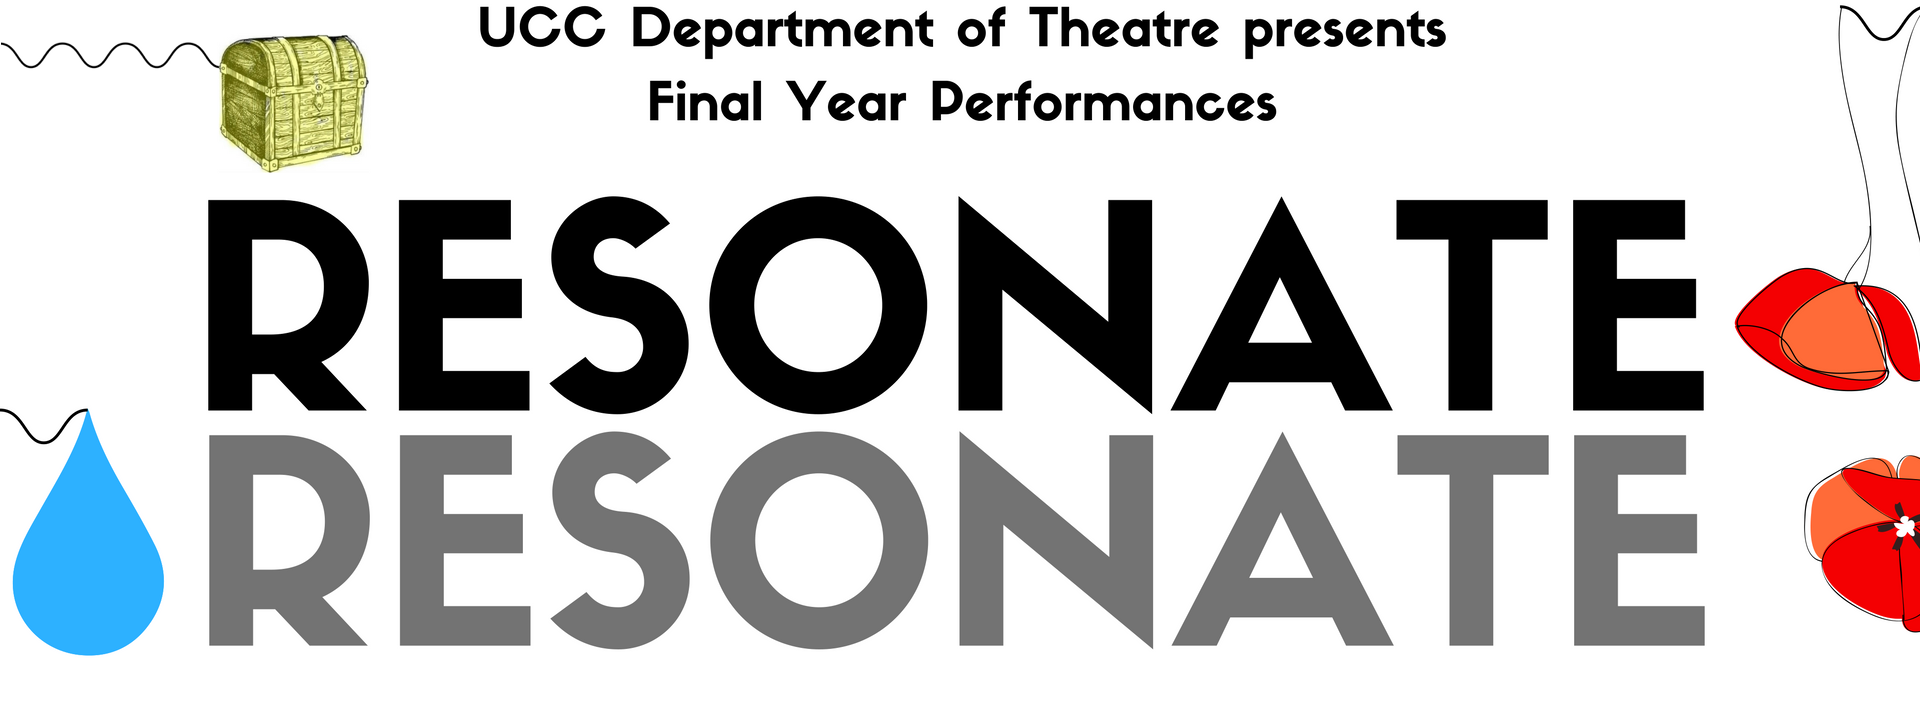 RESONATE - Final Year Performances in Firkin Crane